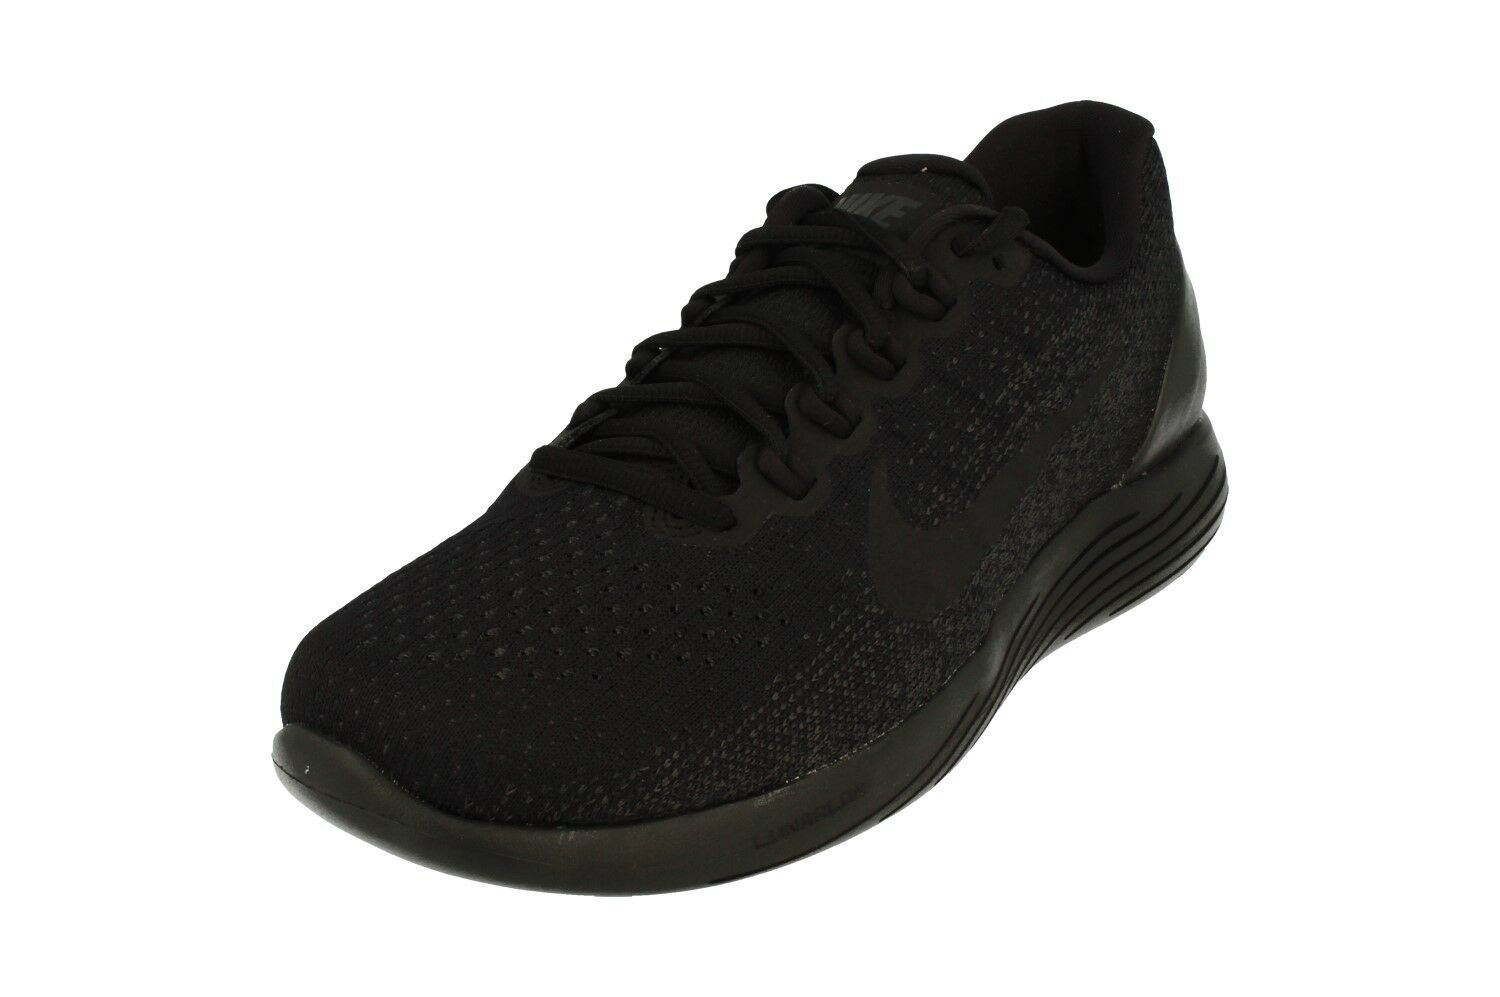 New shoes for men and women, limited time discount Nike Lunarglide 9 Mens Running Trainers 904715 Sneakers Shoes 007